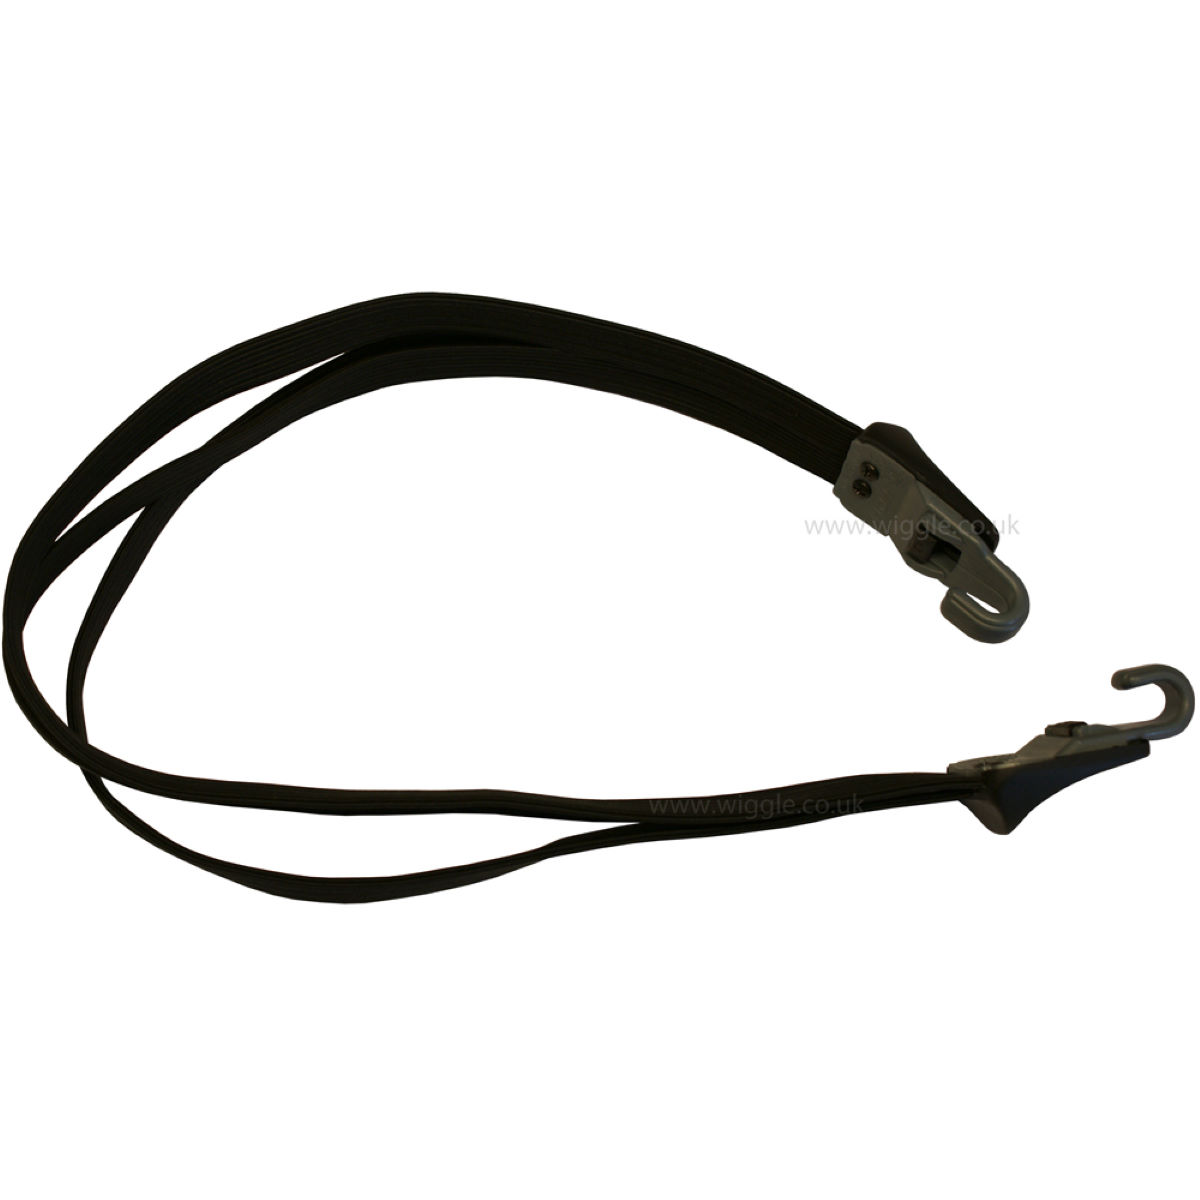 Tubus Carrier Stretch Belt